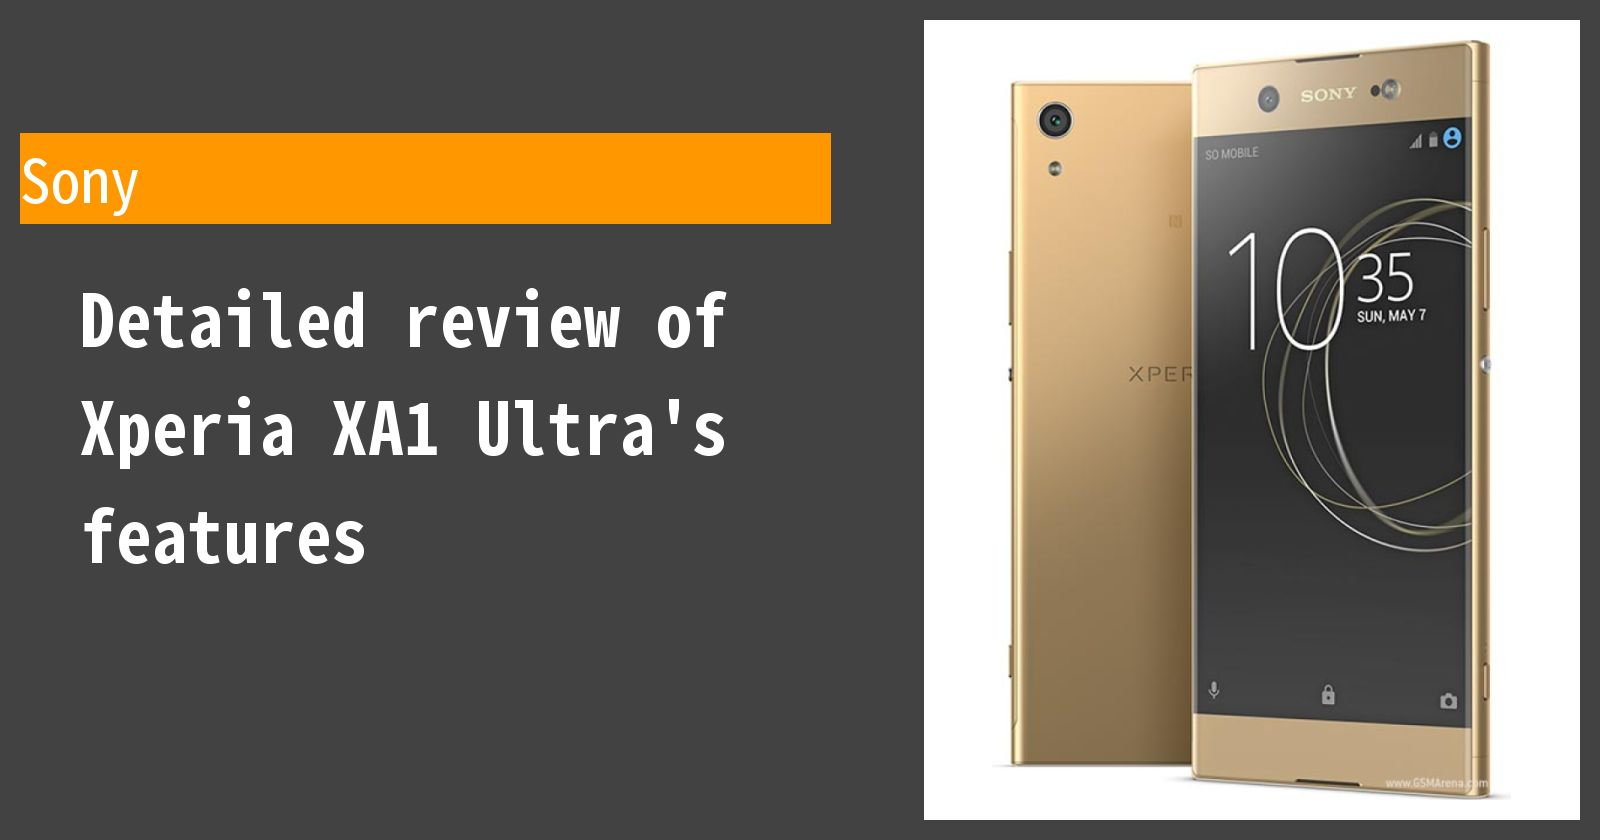 Detailed review of Xperia XA1 Ultra's features